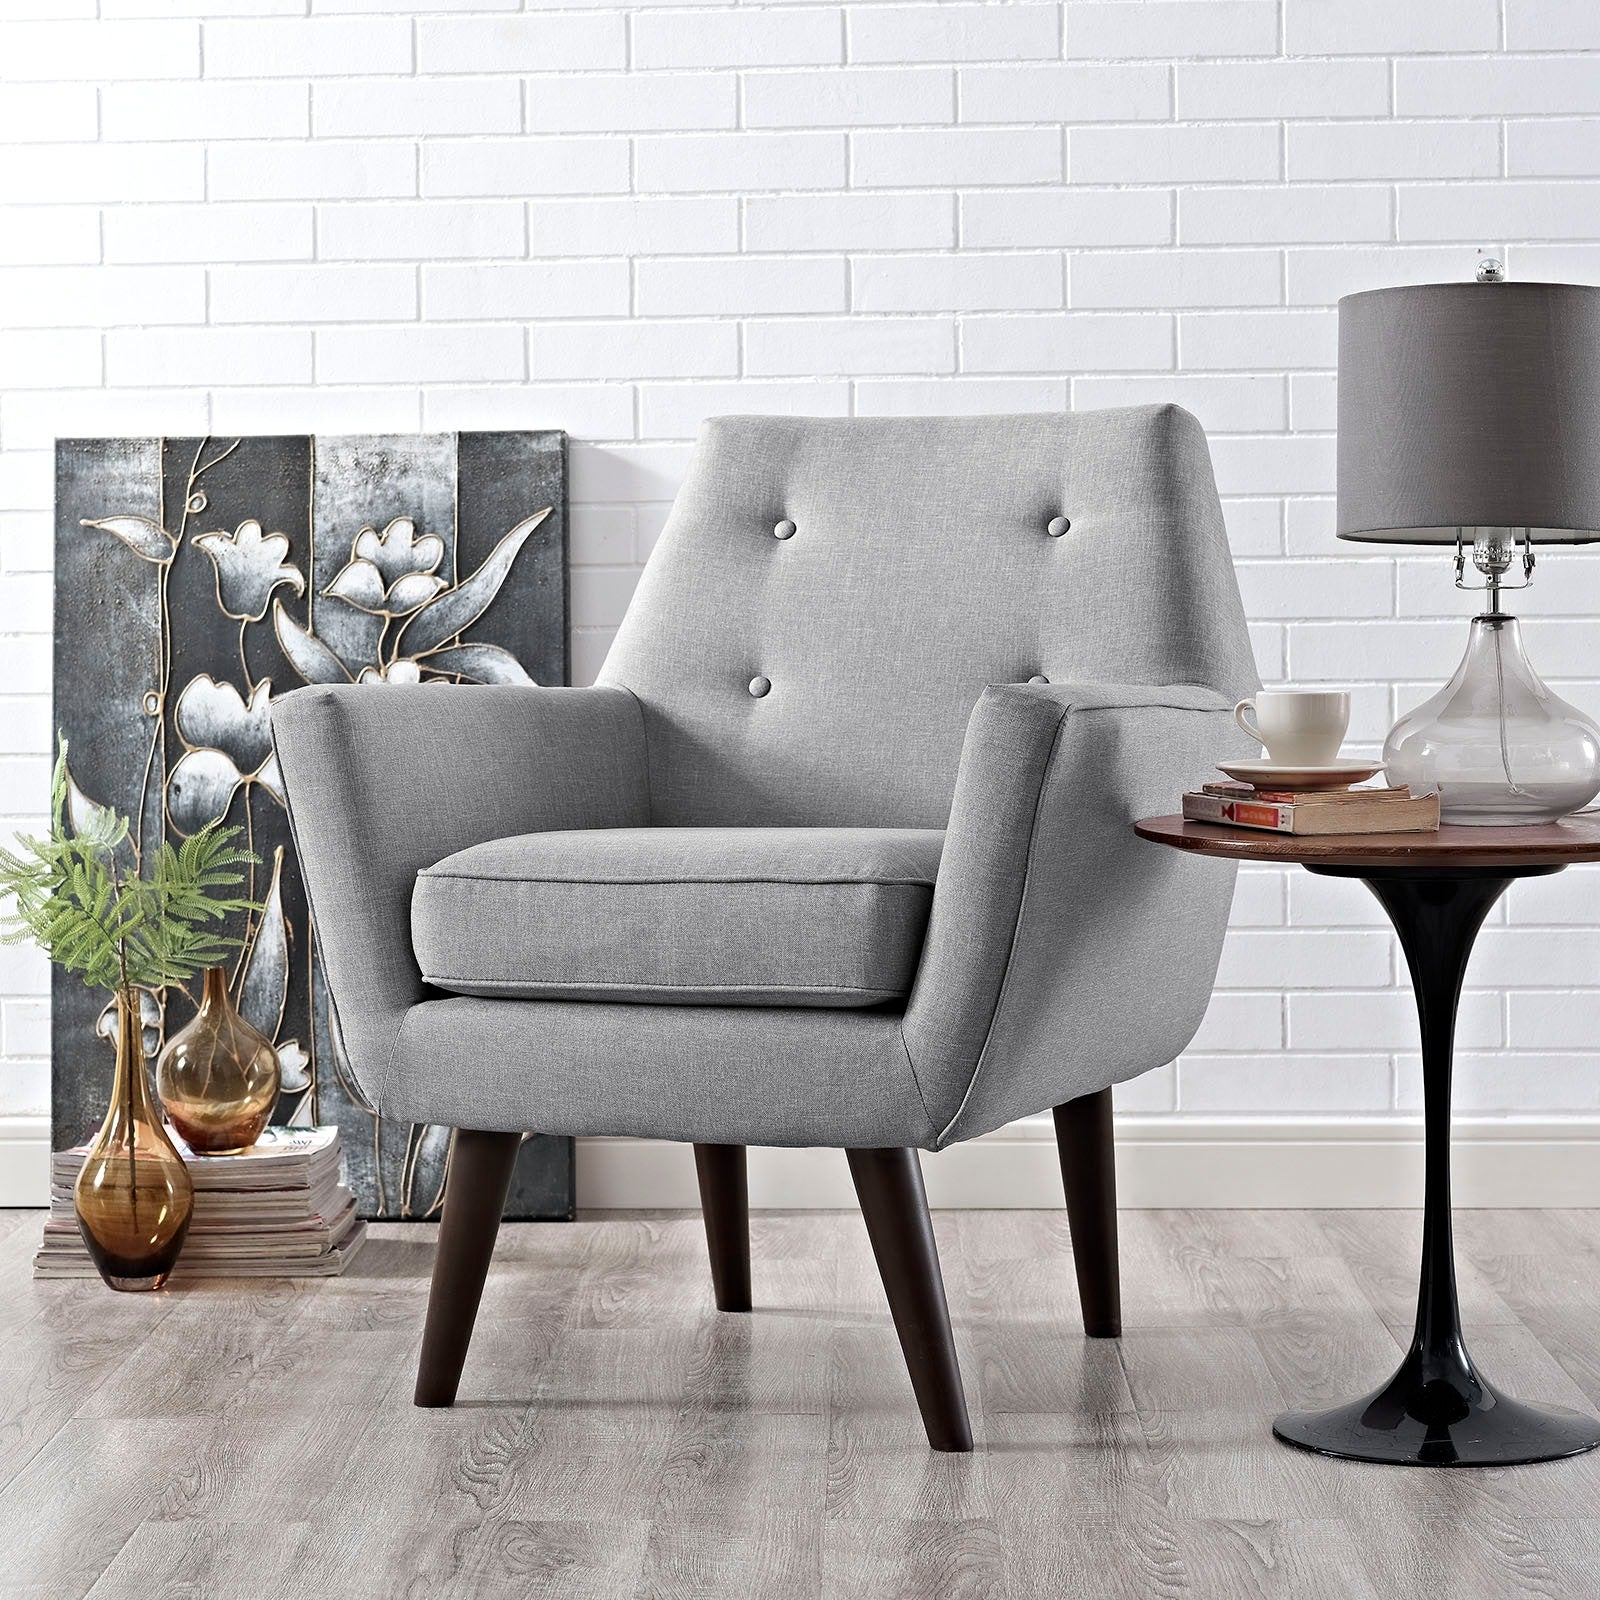 Posit Upholstered Fabric Armchair - Light Gray